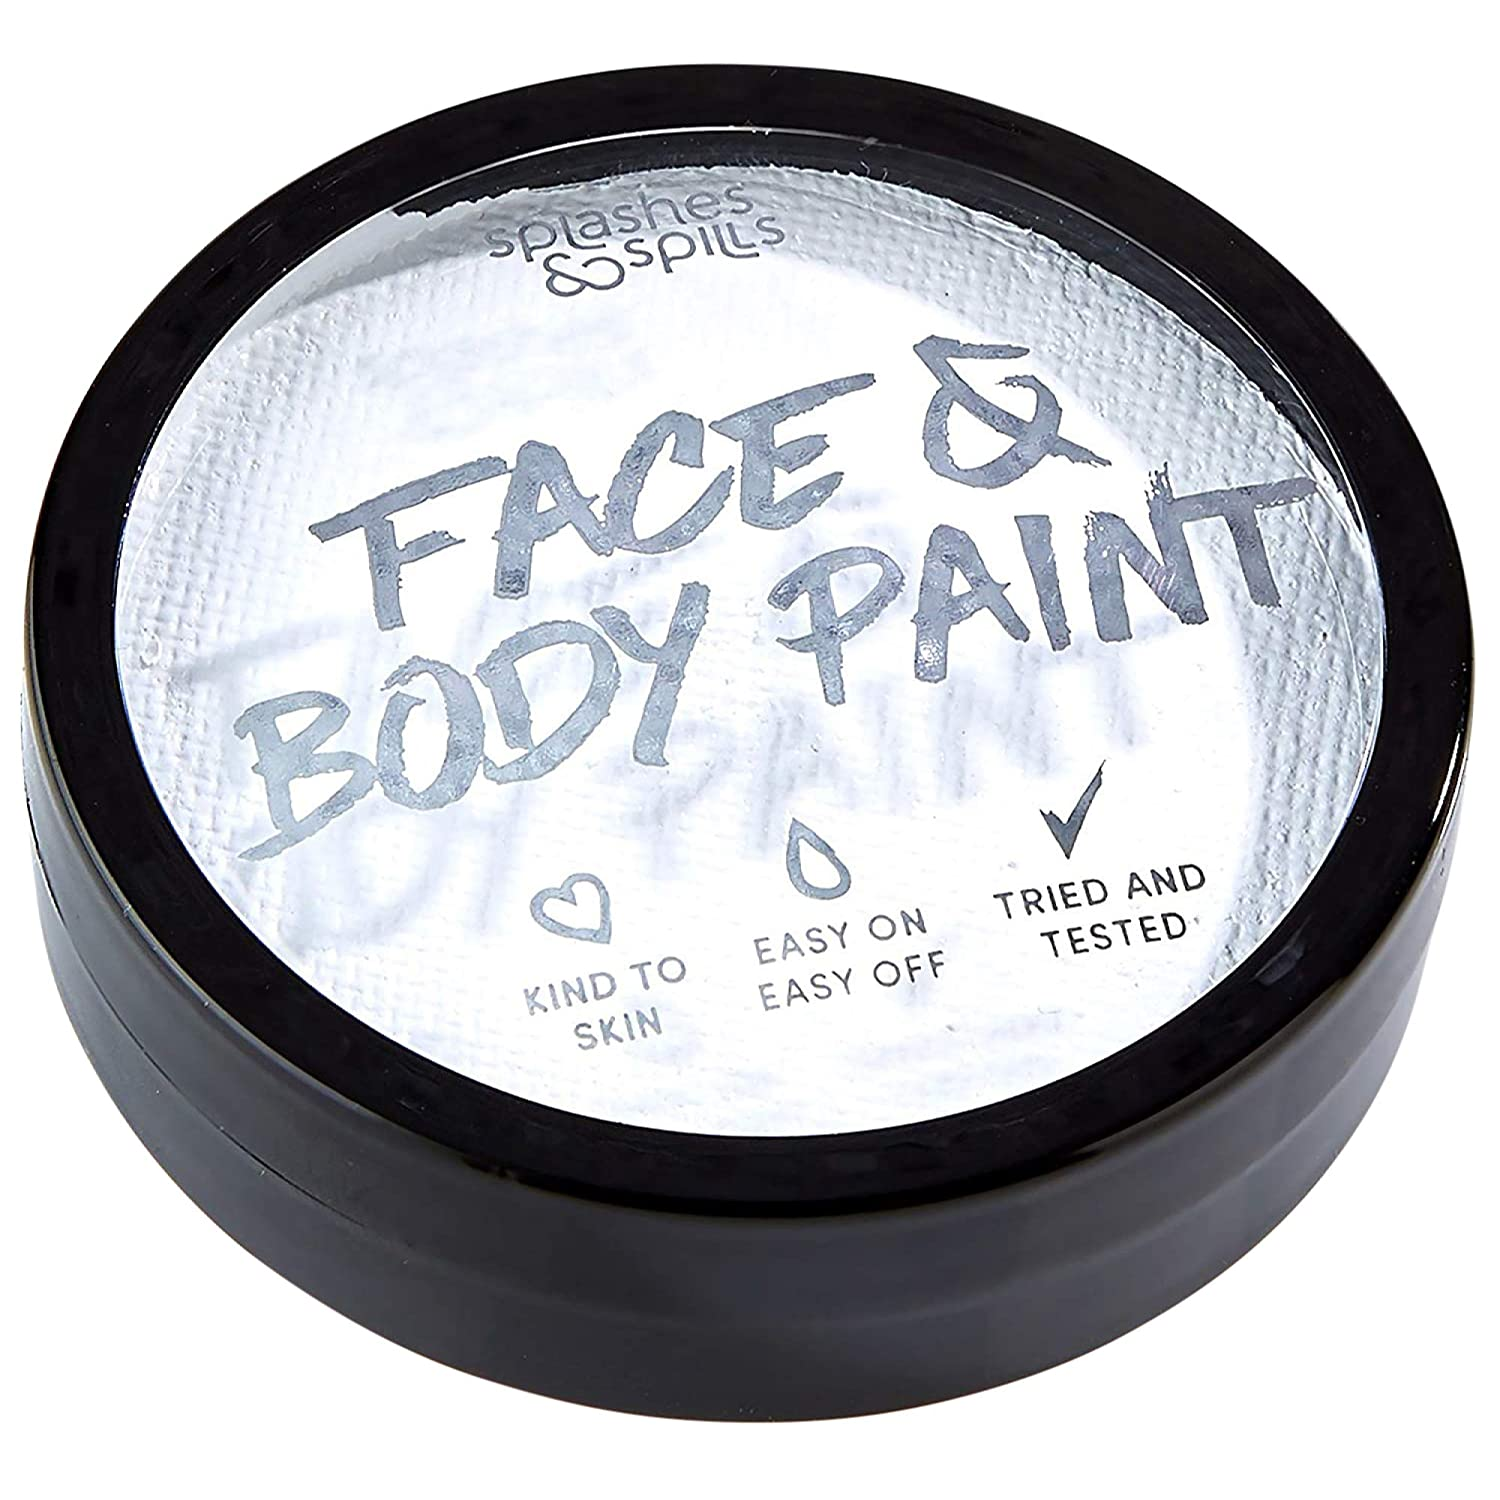 Water Activated Face and Body Paint - White, 18g Cake Tub - Pretend Costume and Dress Up Makeup by Splashes & Spills